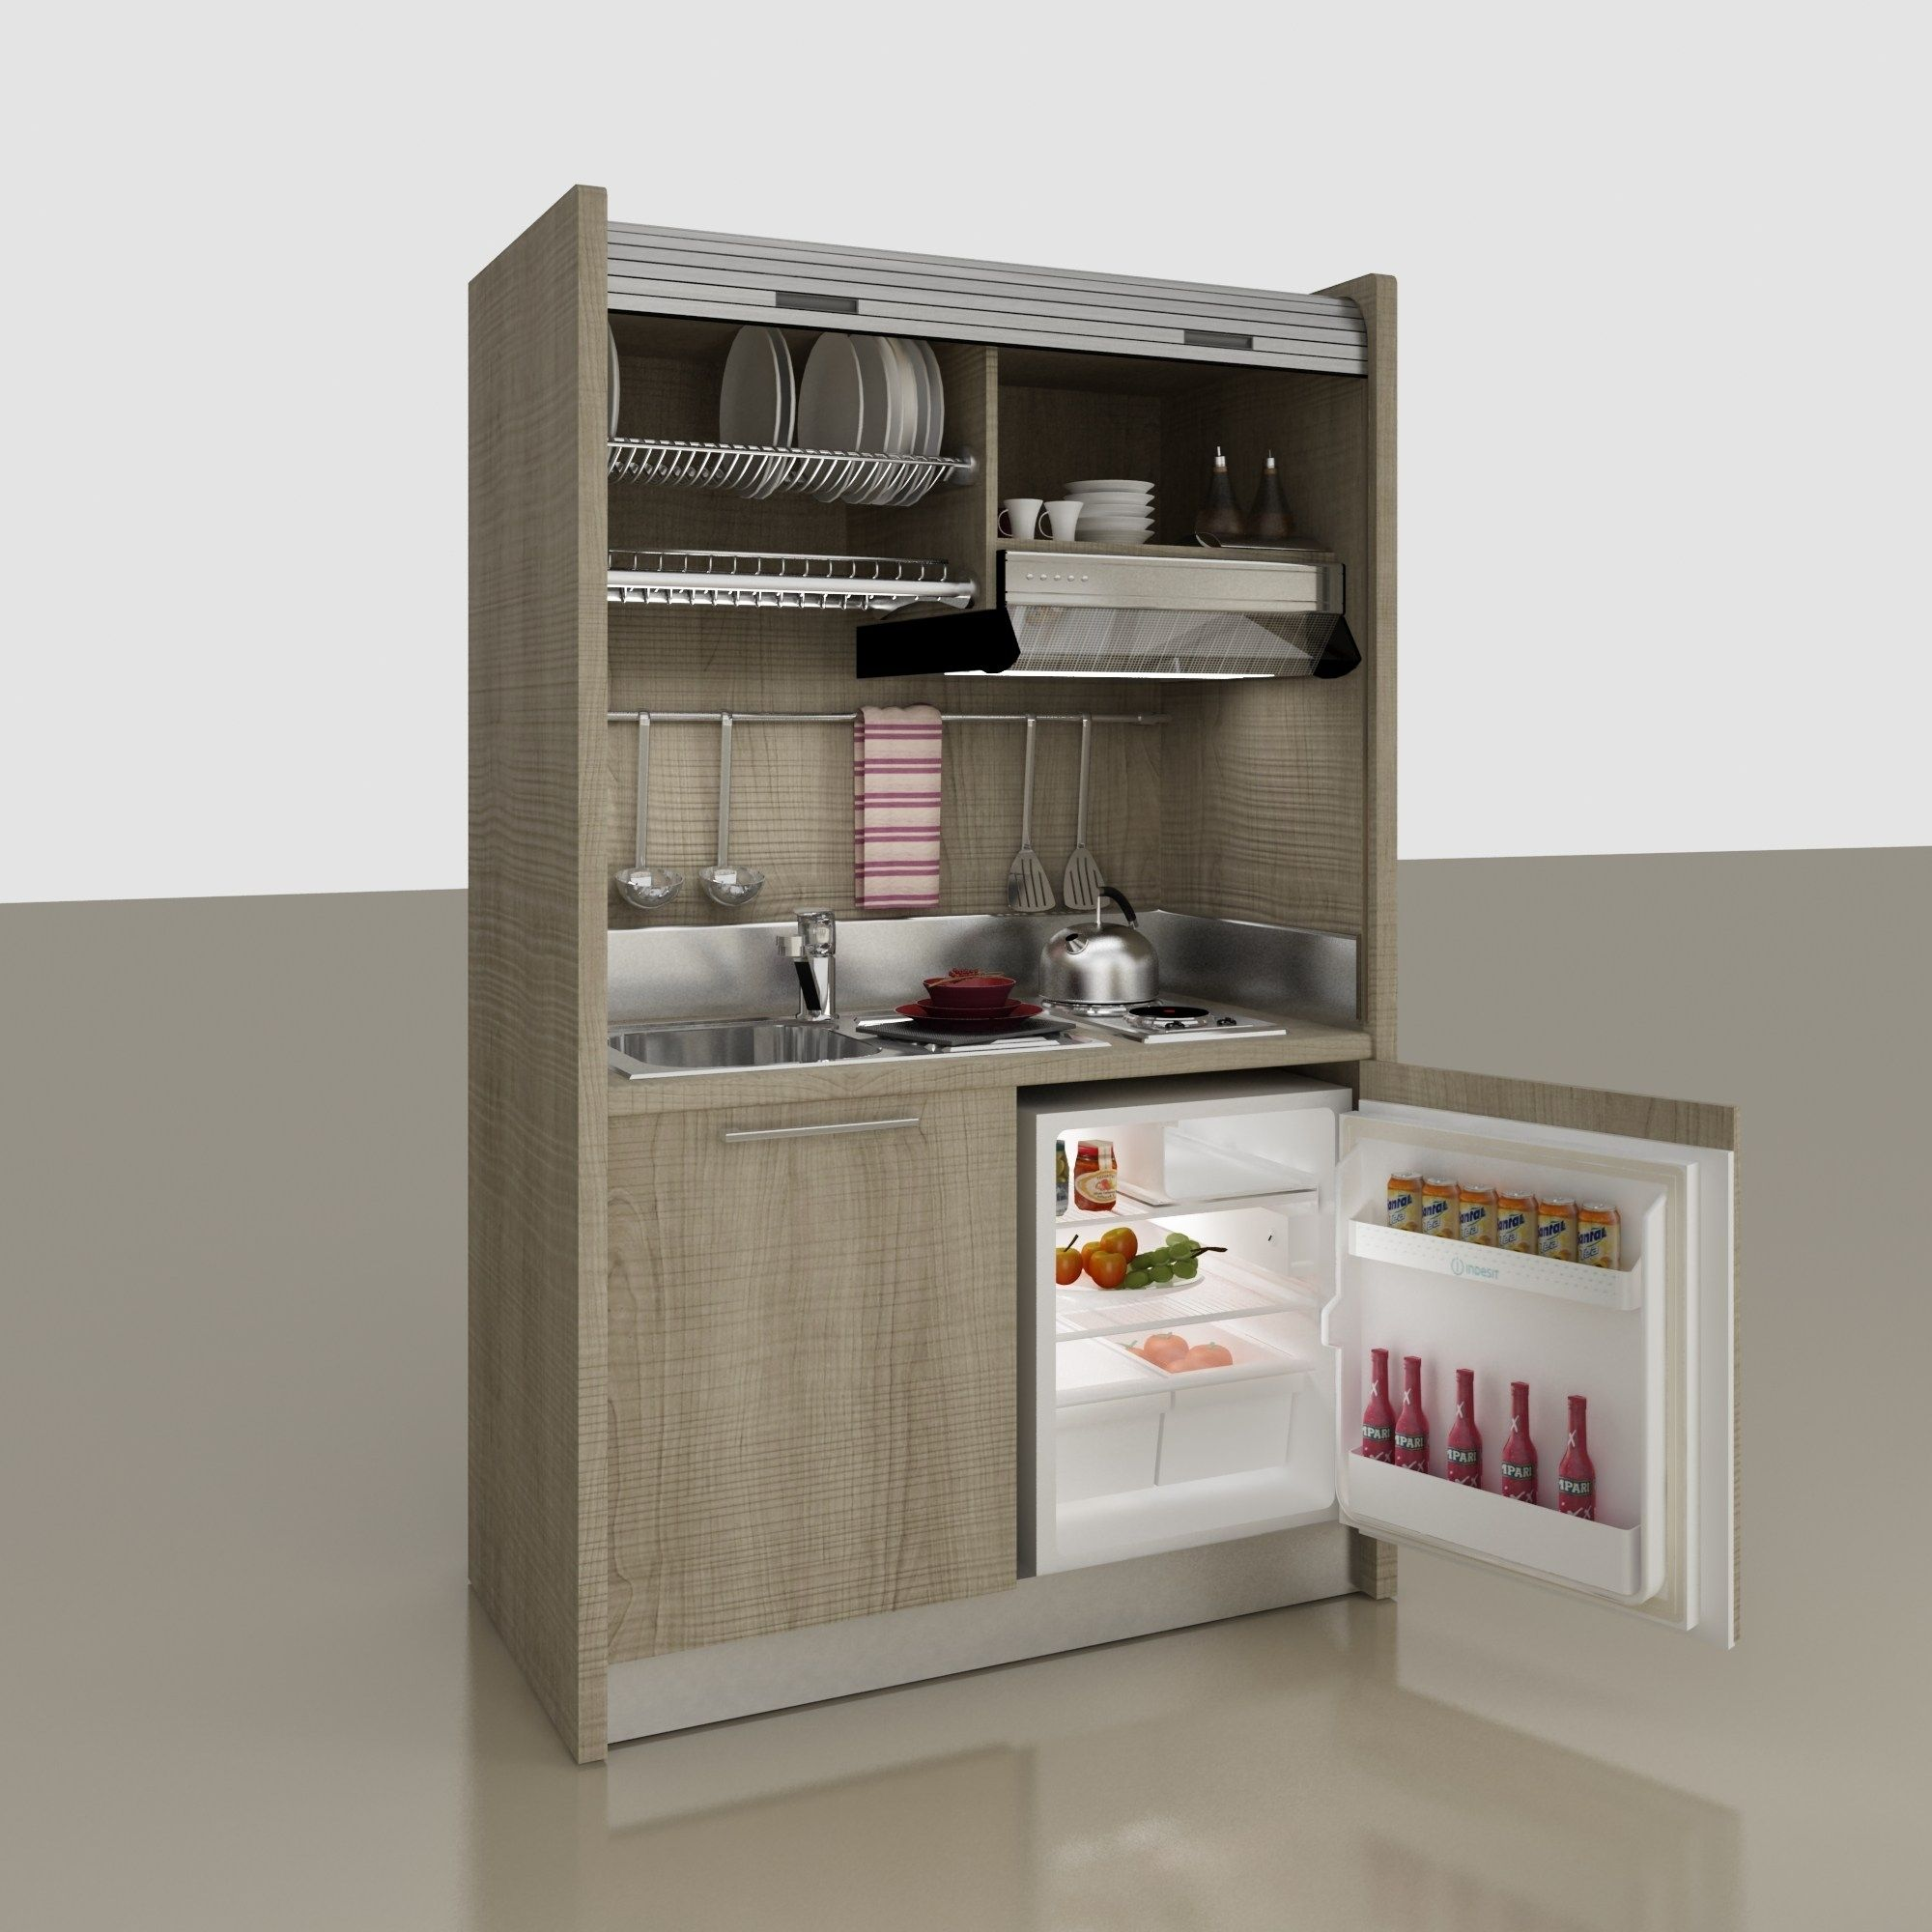 Le mini cucine: Mini cucine prezzi | Van Conversions | Mini kitchen ...